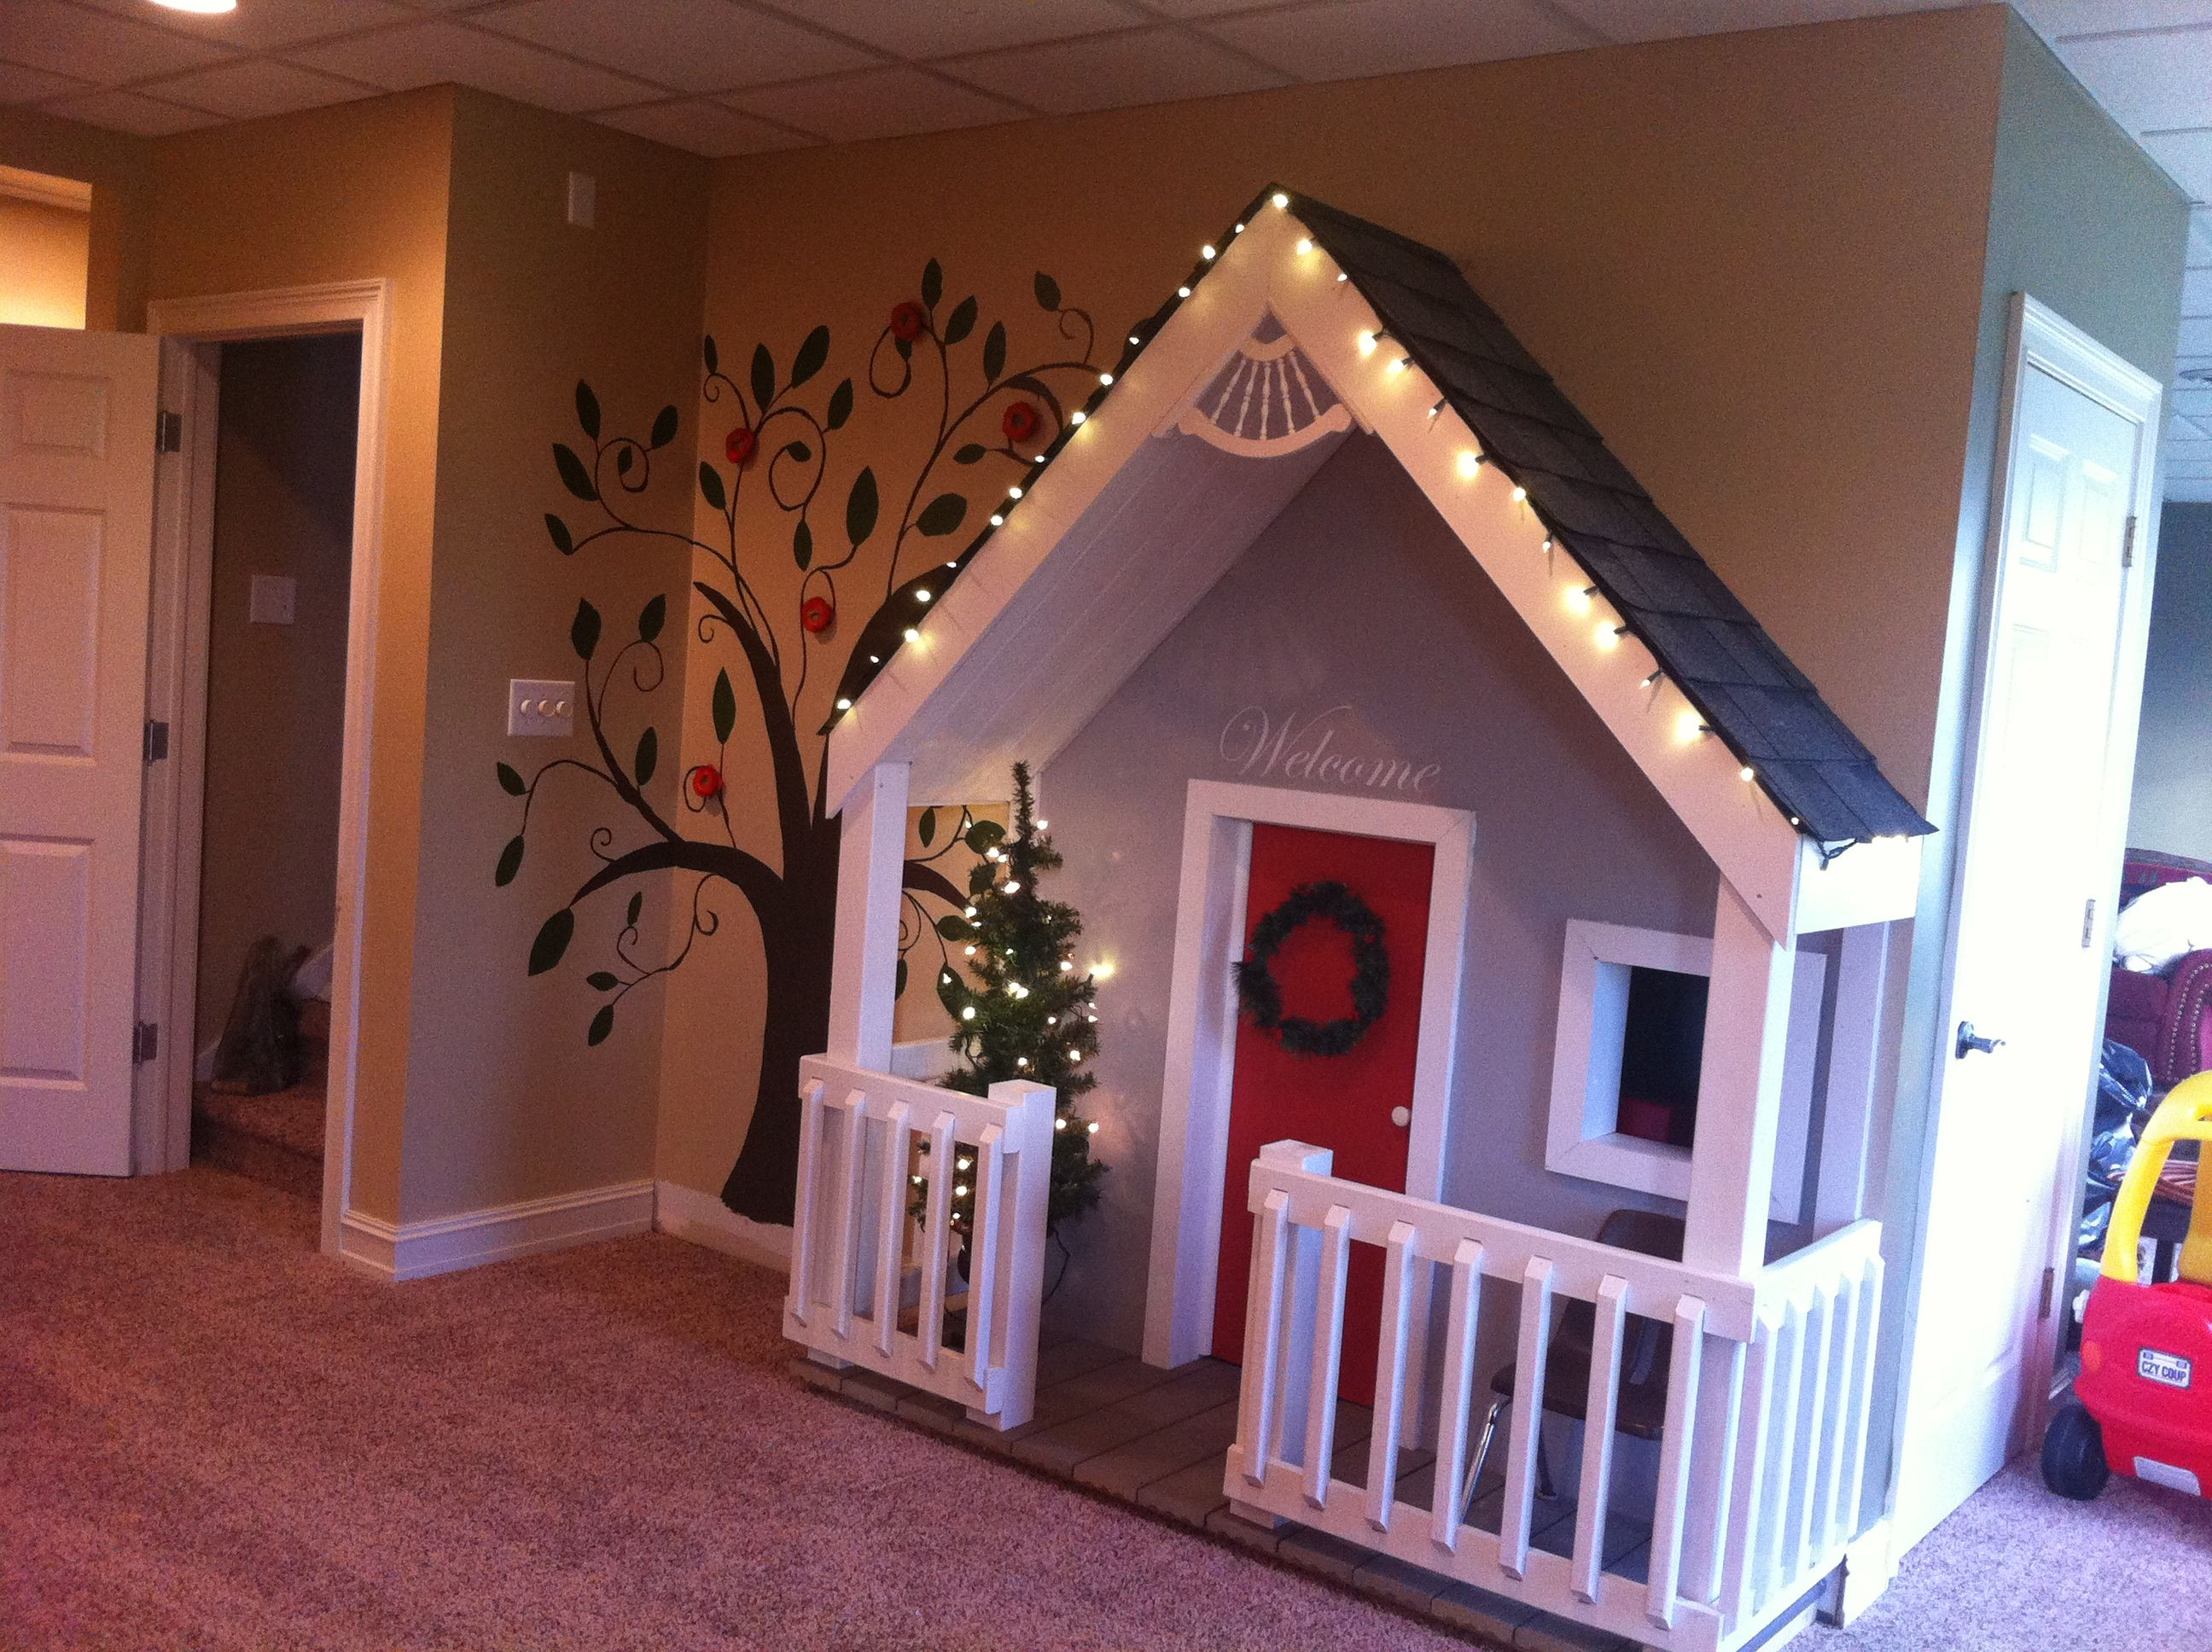 Best 25 indoor playhouse ideas on pinterest indoor for Wendy house ideas inside